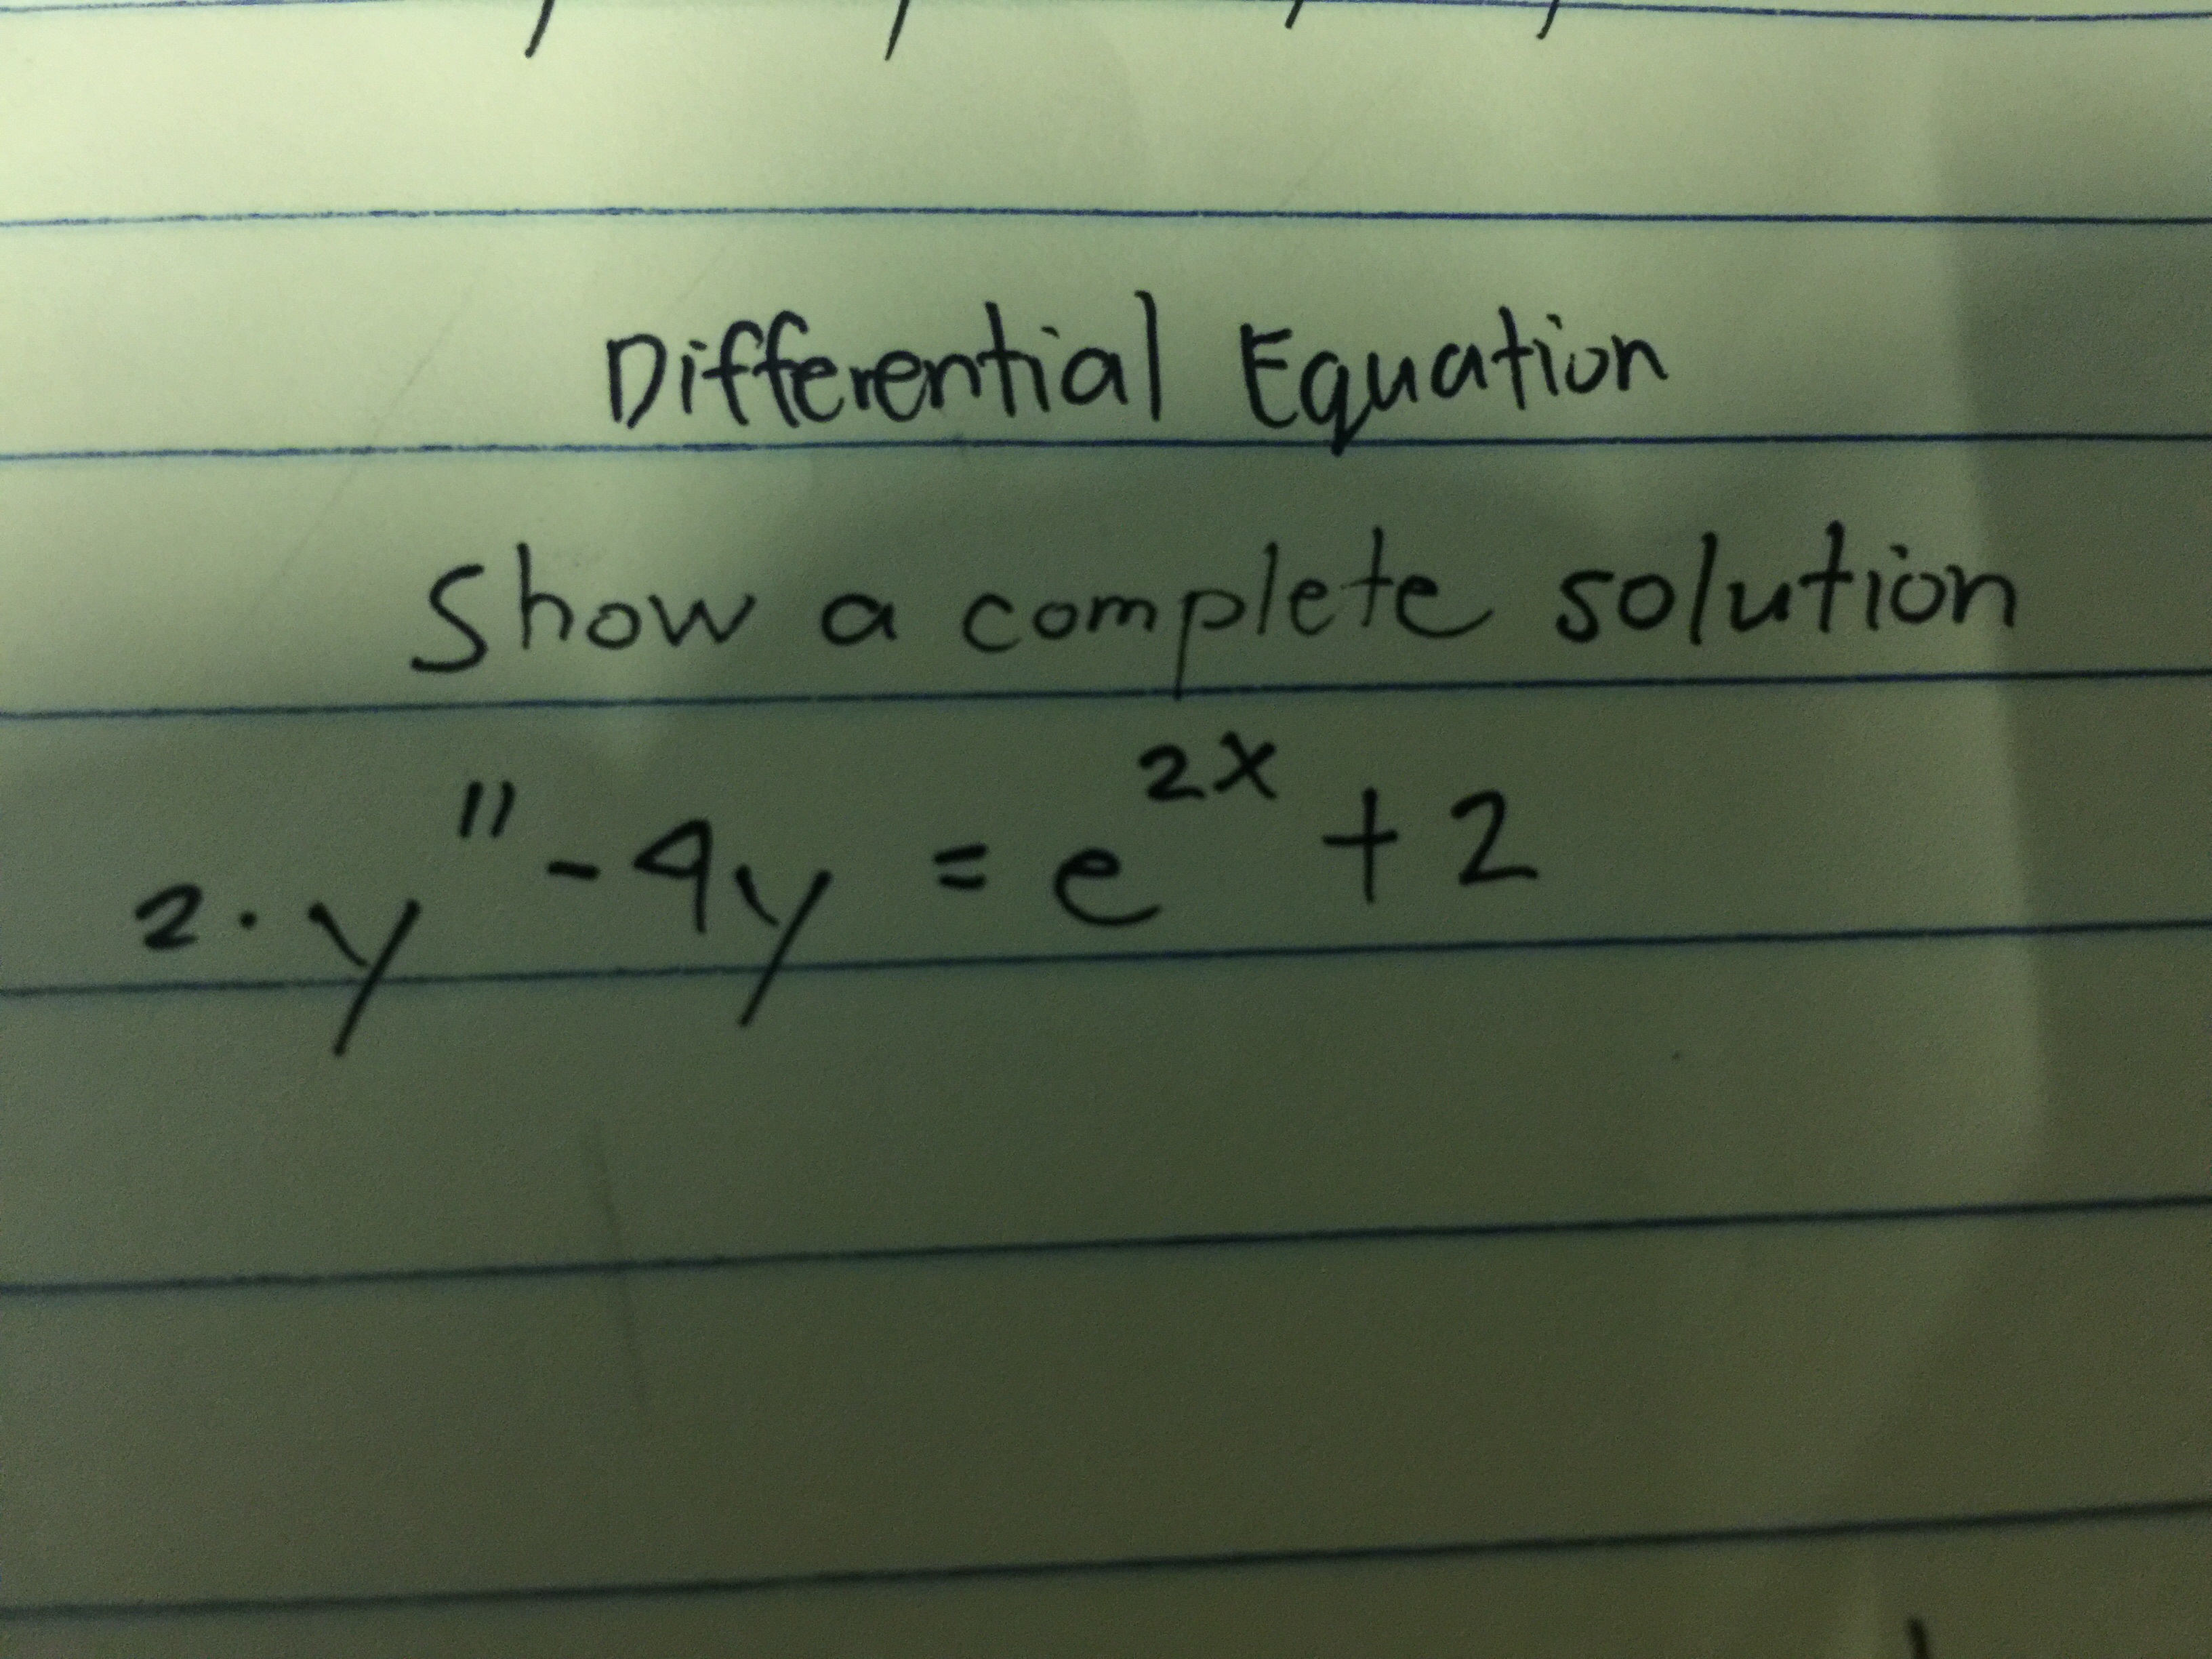 Differential Equation Show a comple te solution 11 2X 2-y-ay e t2